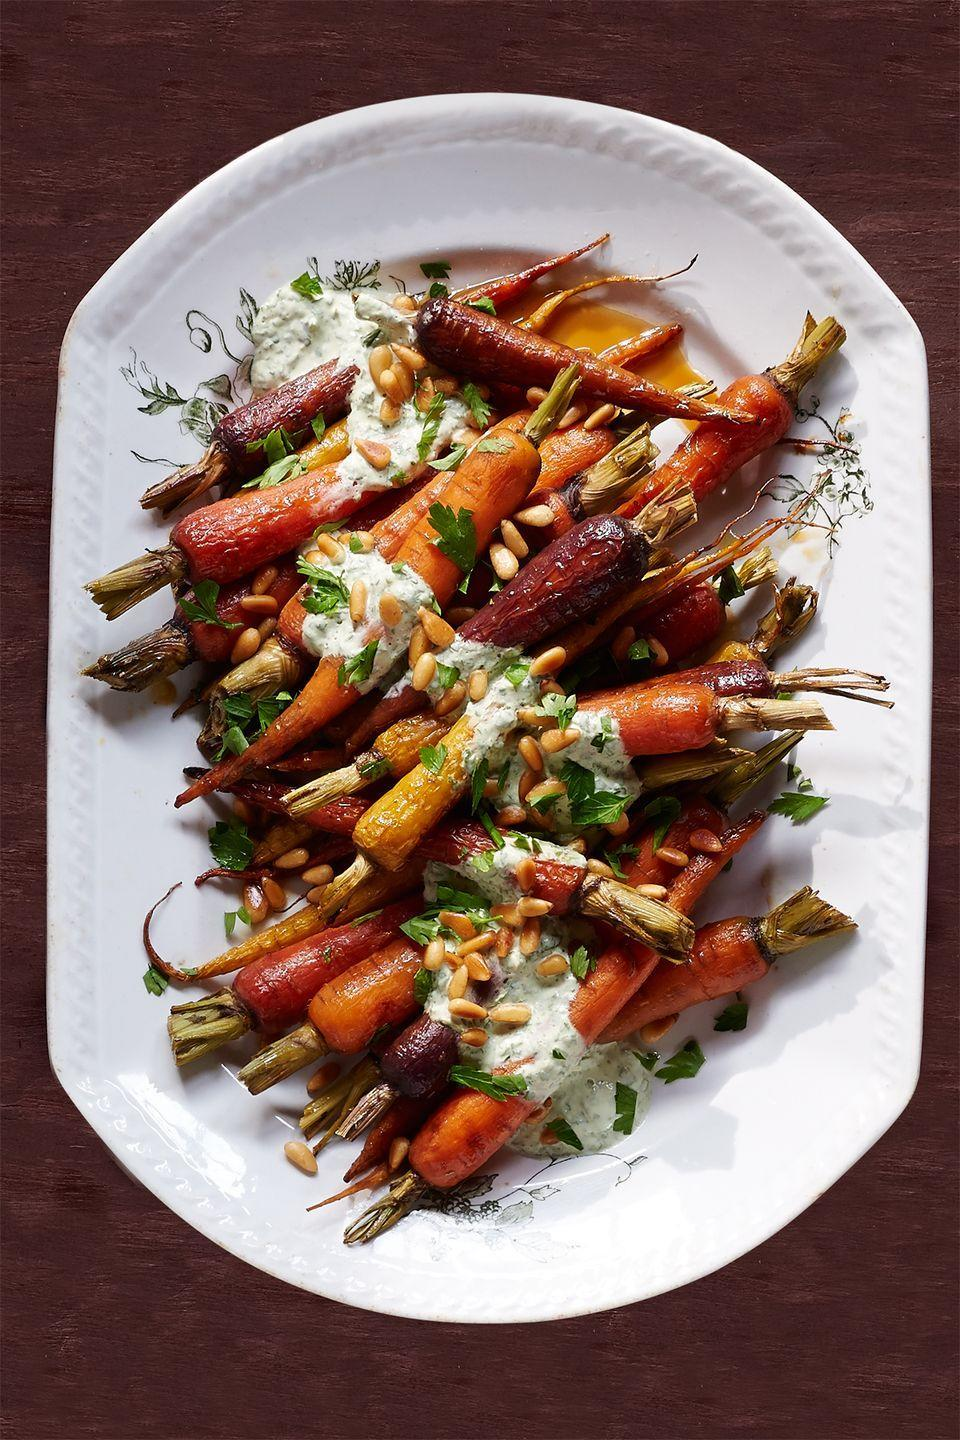 "<p>Brighten up your Thanksgiving table with these light and tangy carrots.</p><p><strong><a href=""https://www.countryliving.com/food-drinks/recipes/a36647/orange-carrots-yogurt-parsley-dressing/"" rel=""nofollow noopener"" target=""_blank"" data-ylk=""slk:Get the recipe"" class=""link rapid-noclick-resp"">Get the recipe</a>.</strong></p>"